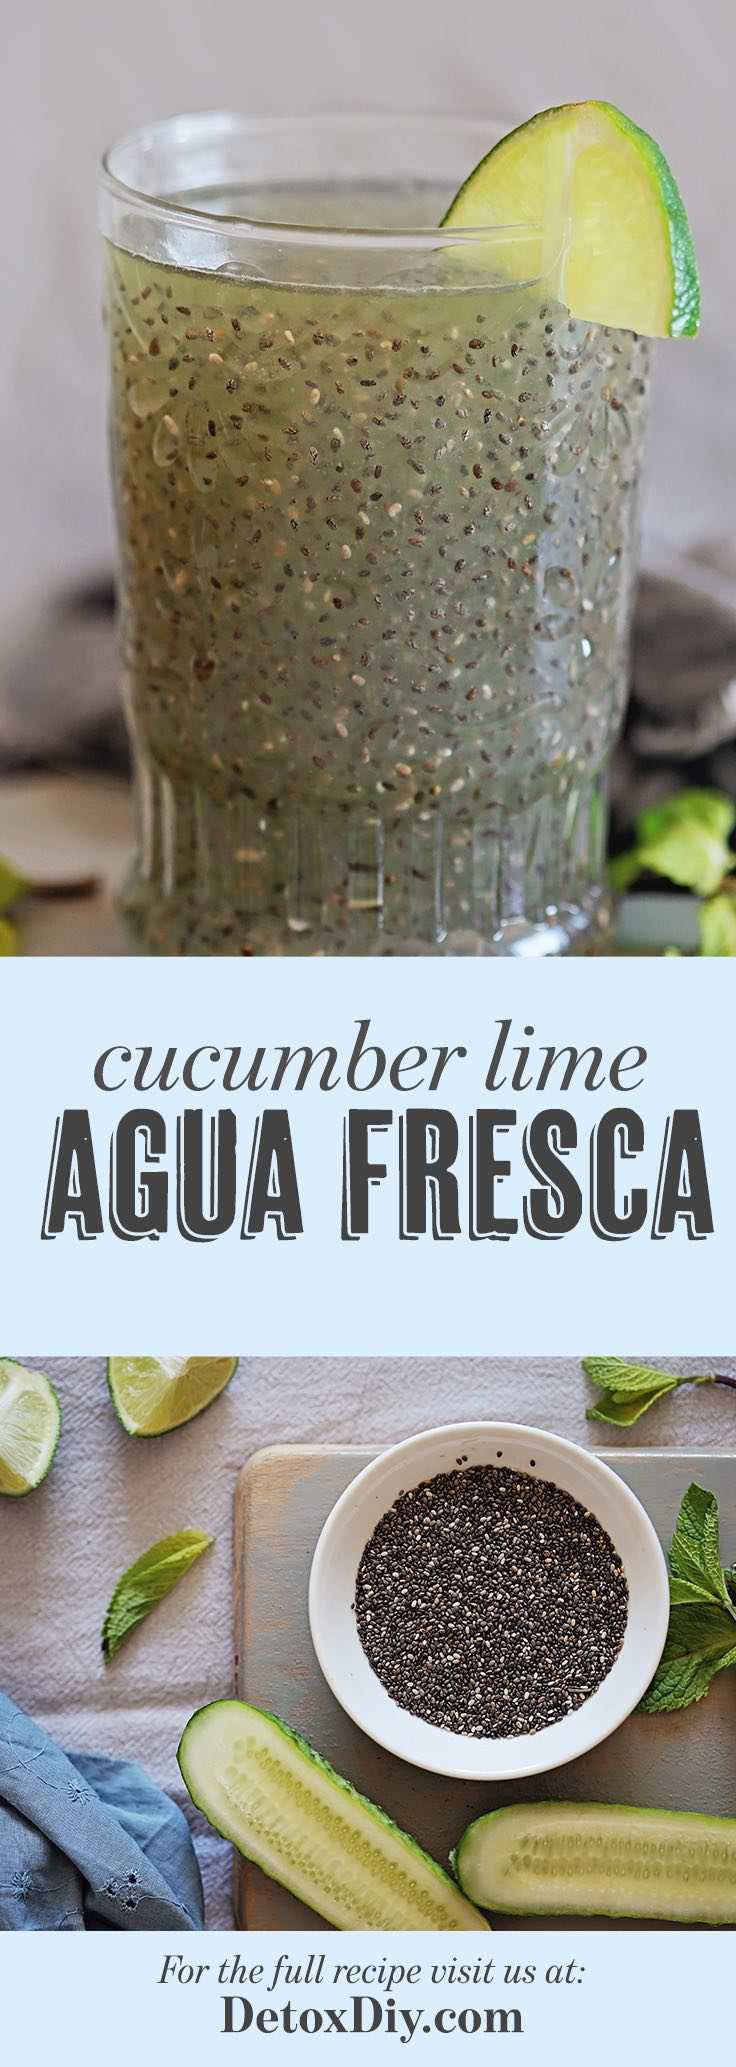 This cucumber lime agua fresca makes the most refreshing and hydrating drink!